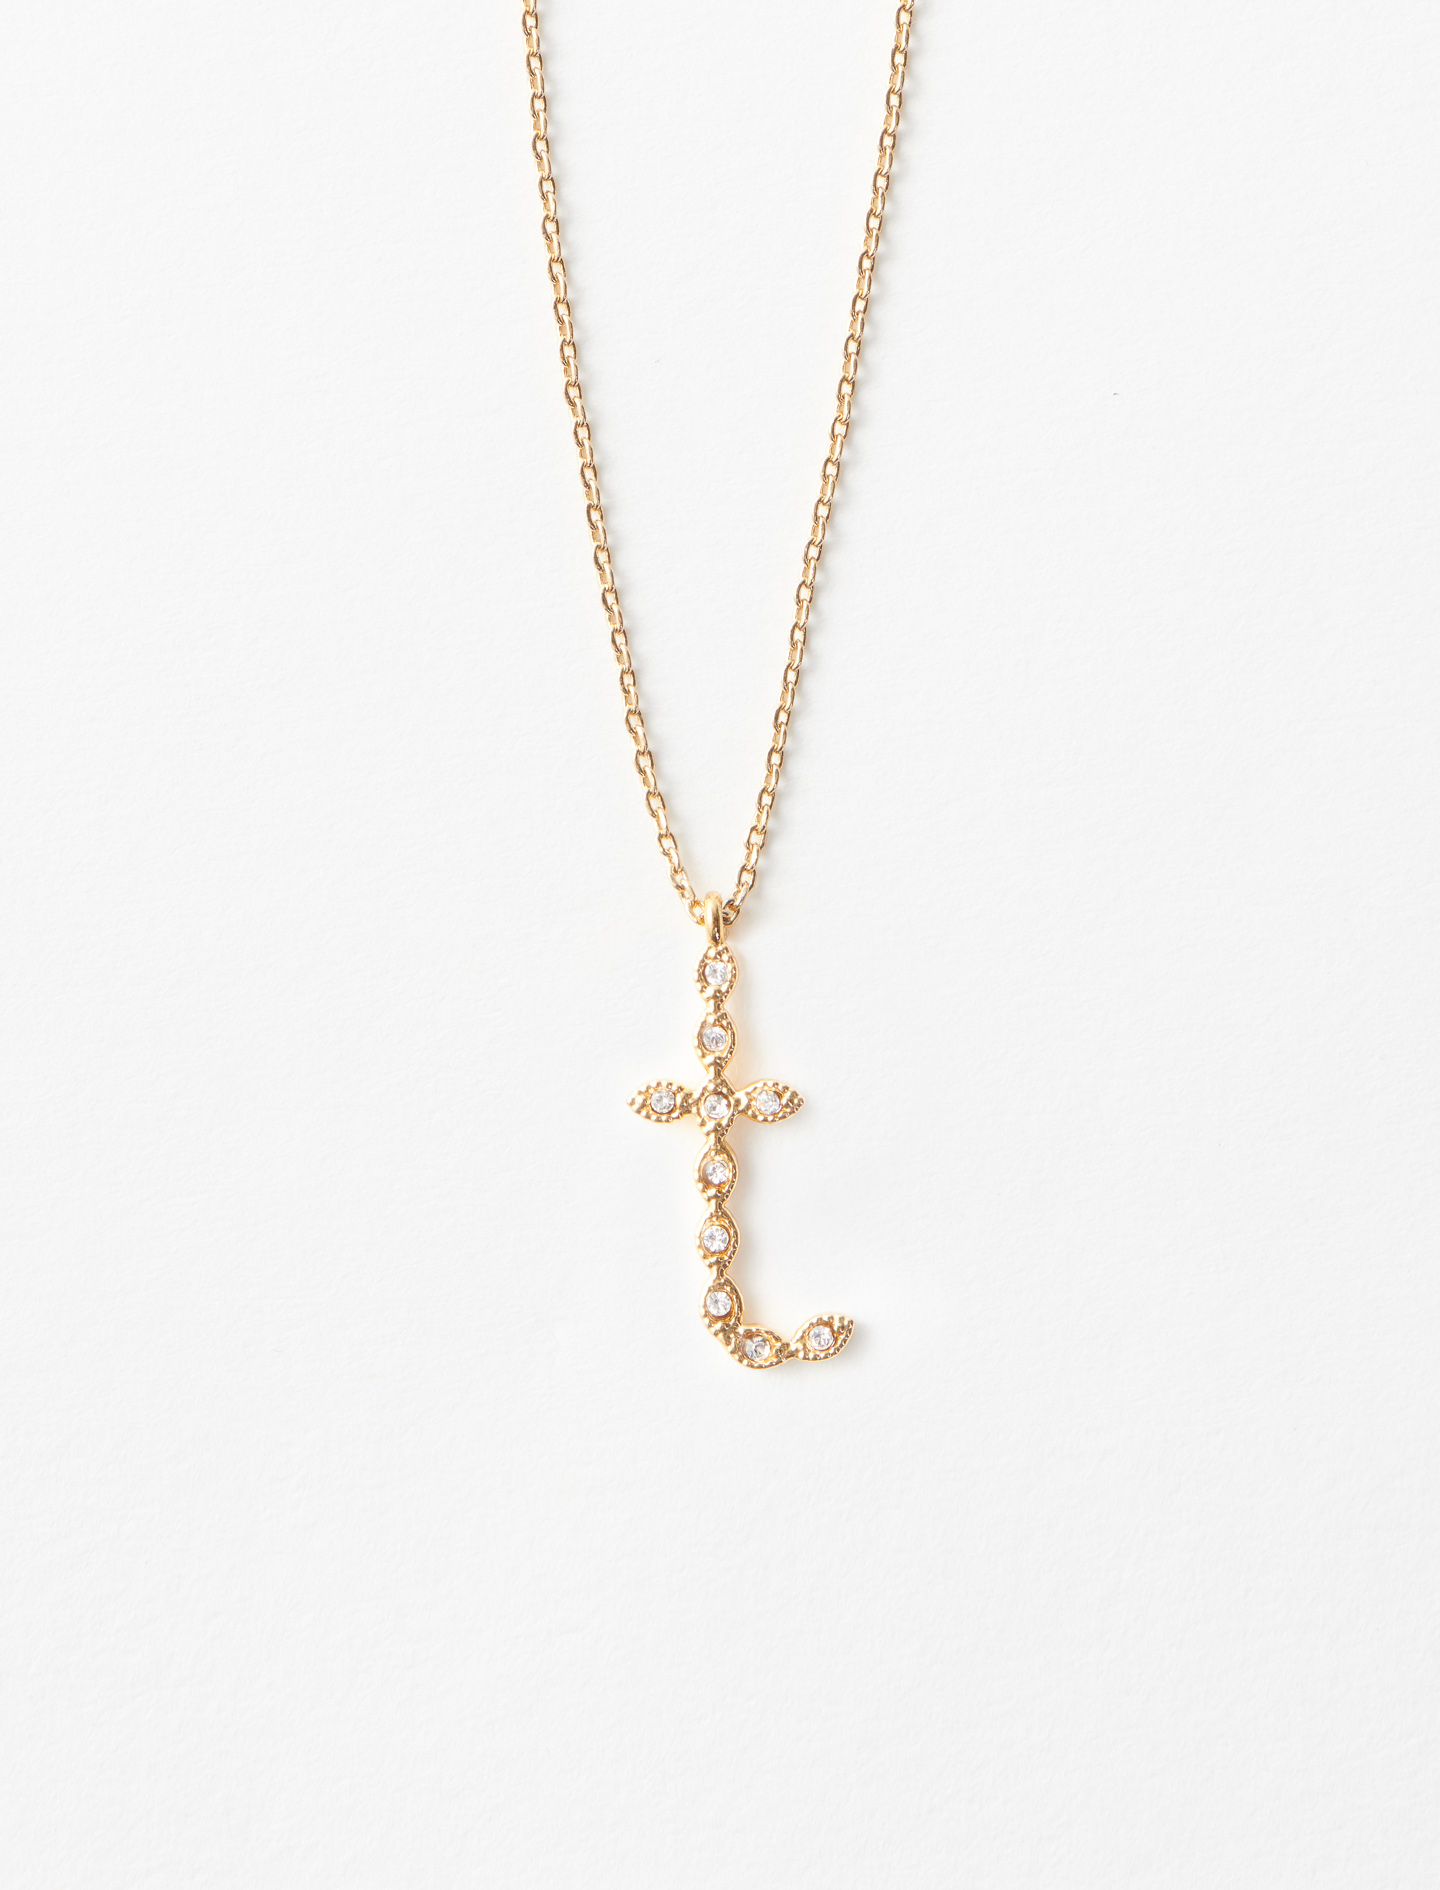 Rhinestone T necklace - Gold